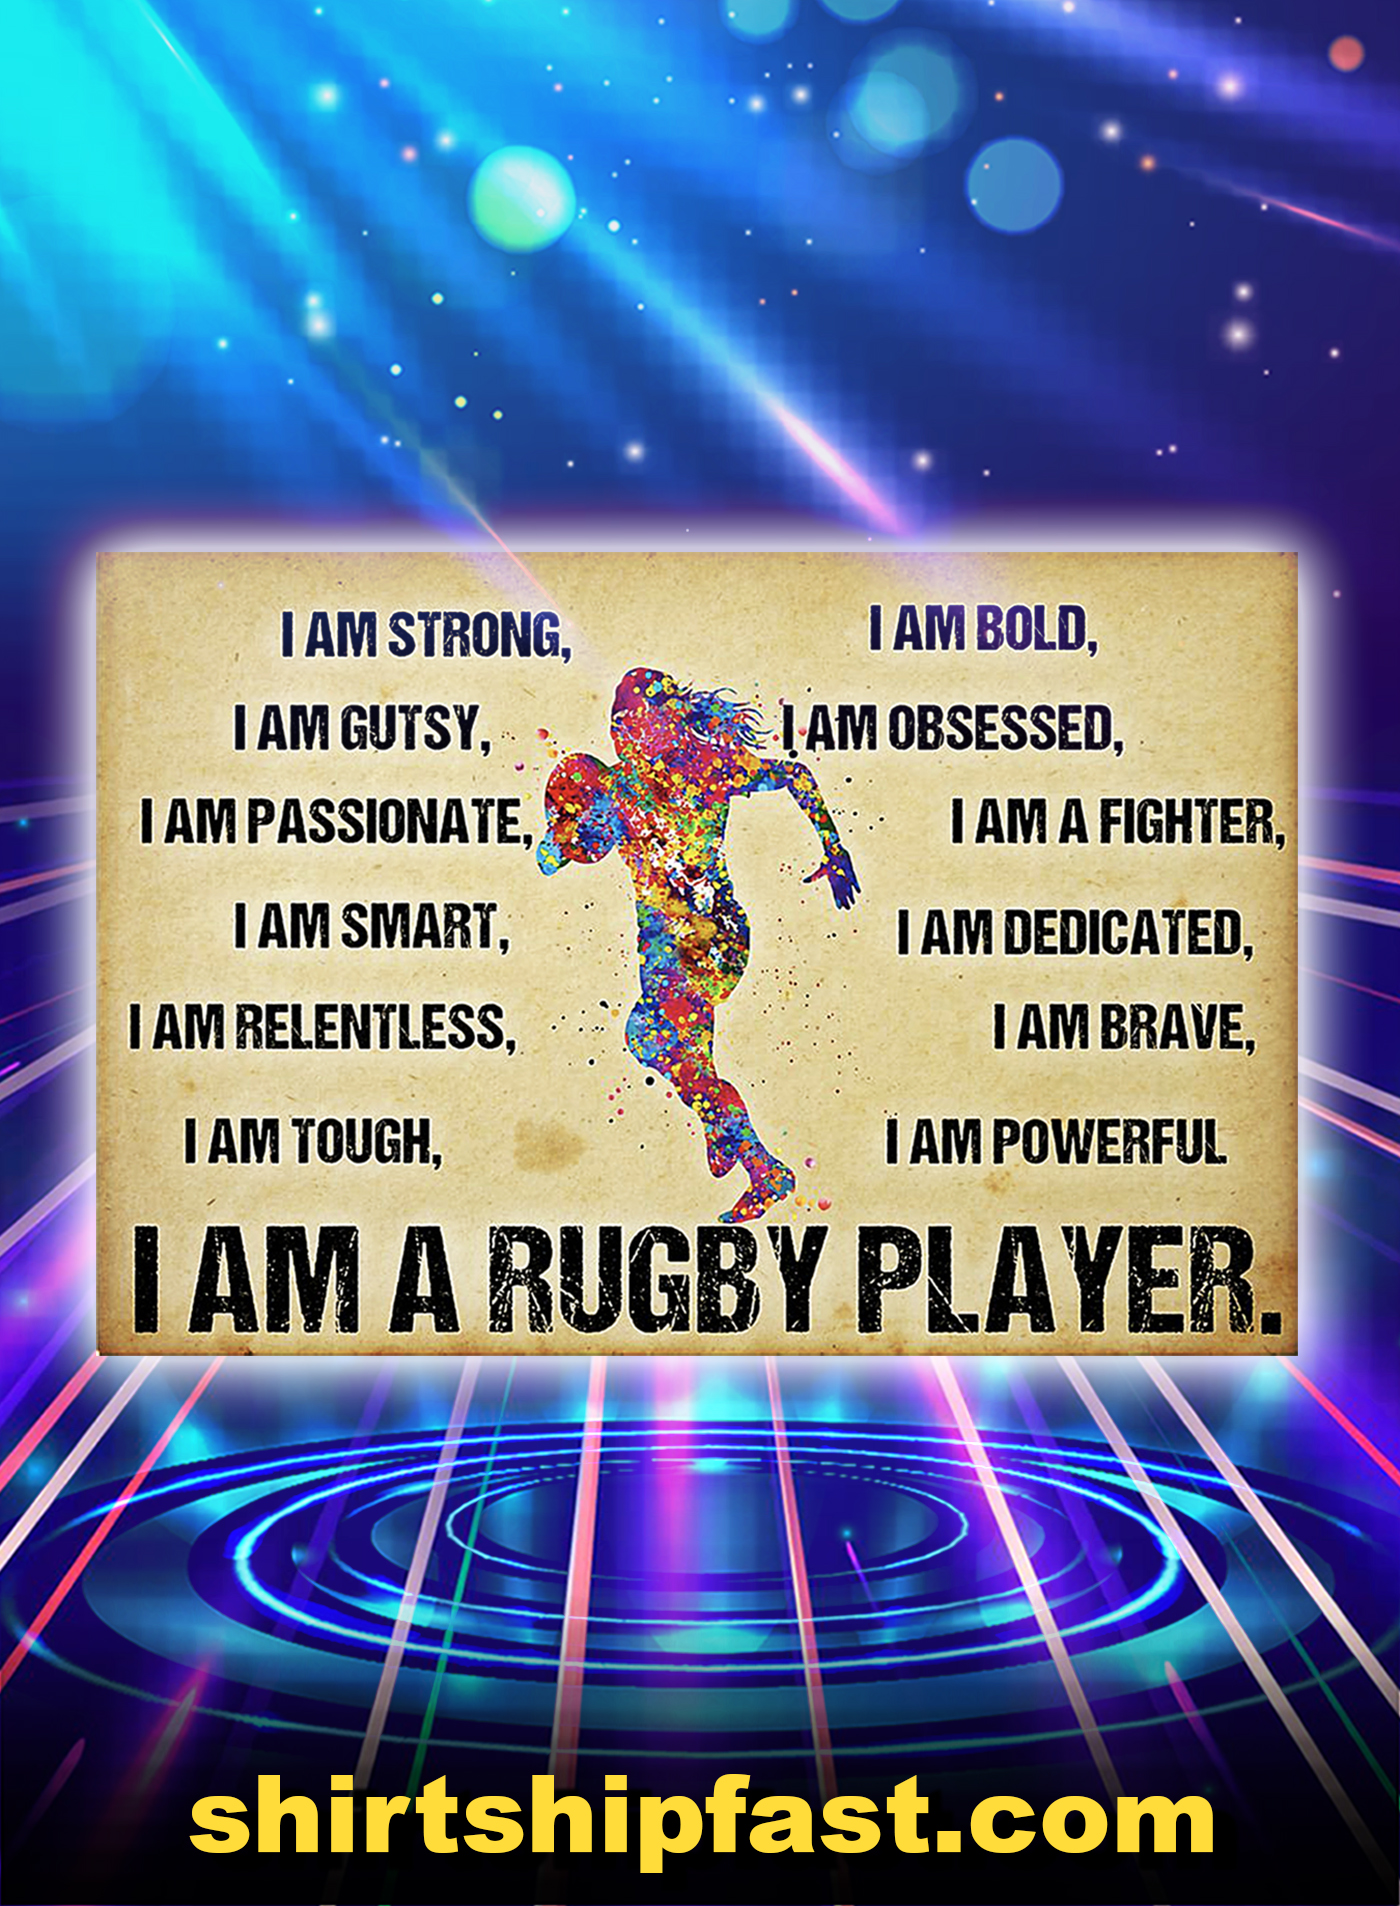 I am a rugby player poster - A1